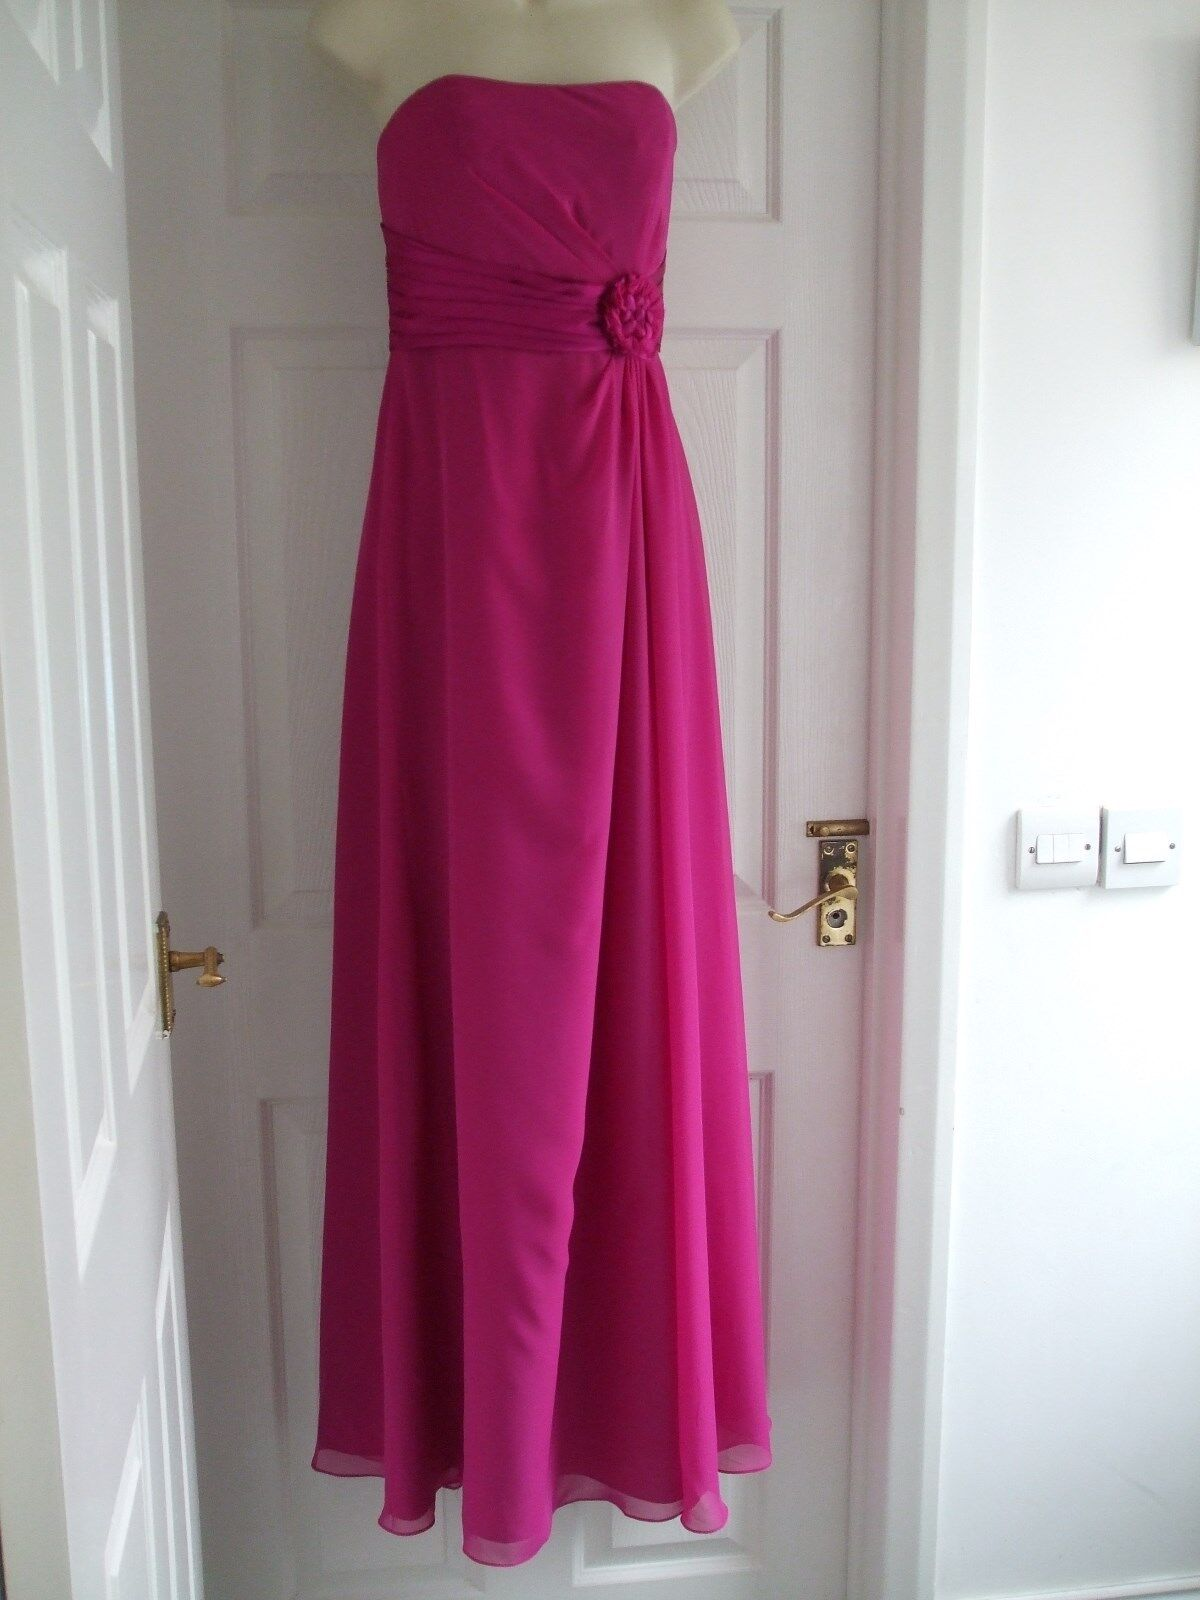 Z Womens Size 8 Pink Dress LADIES FULL LENGTH PROM SMART EVENING PROM SUMMER